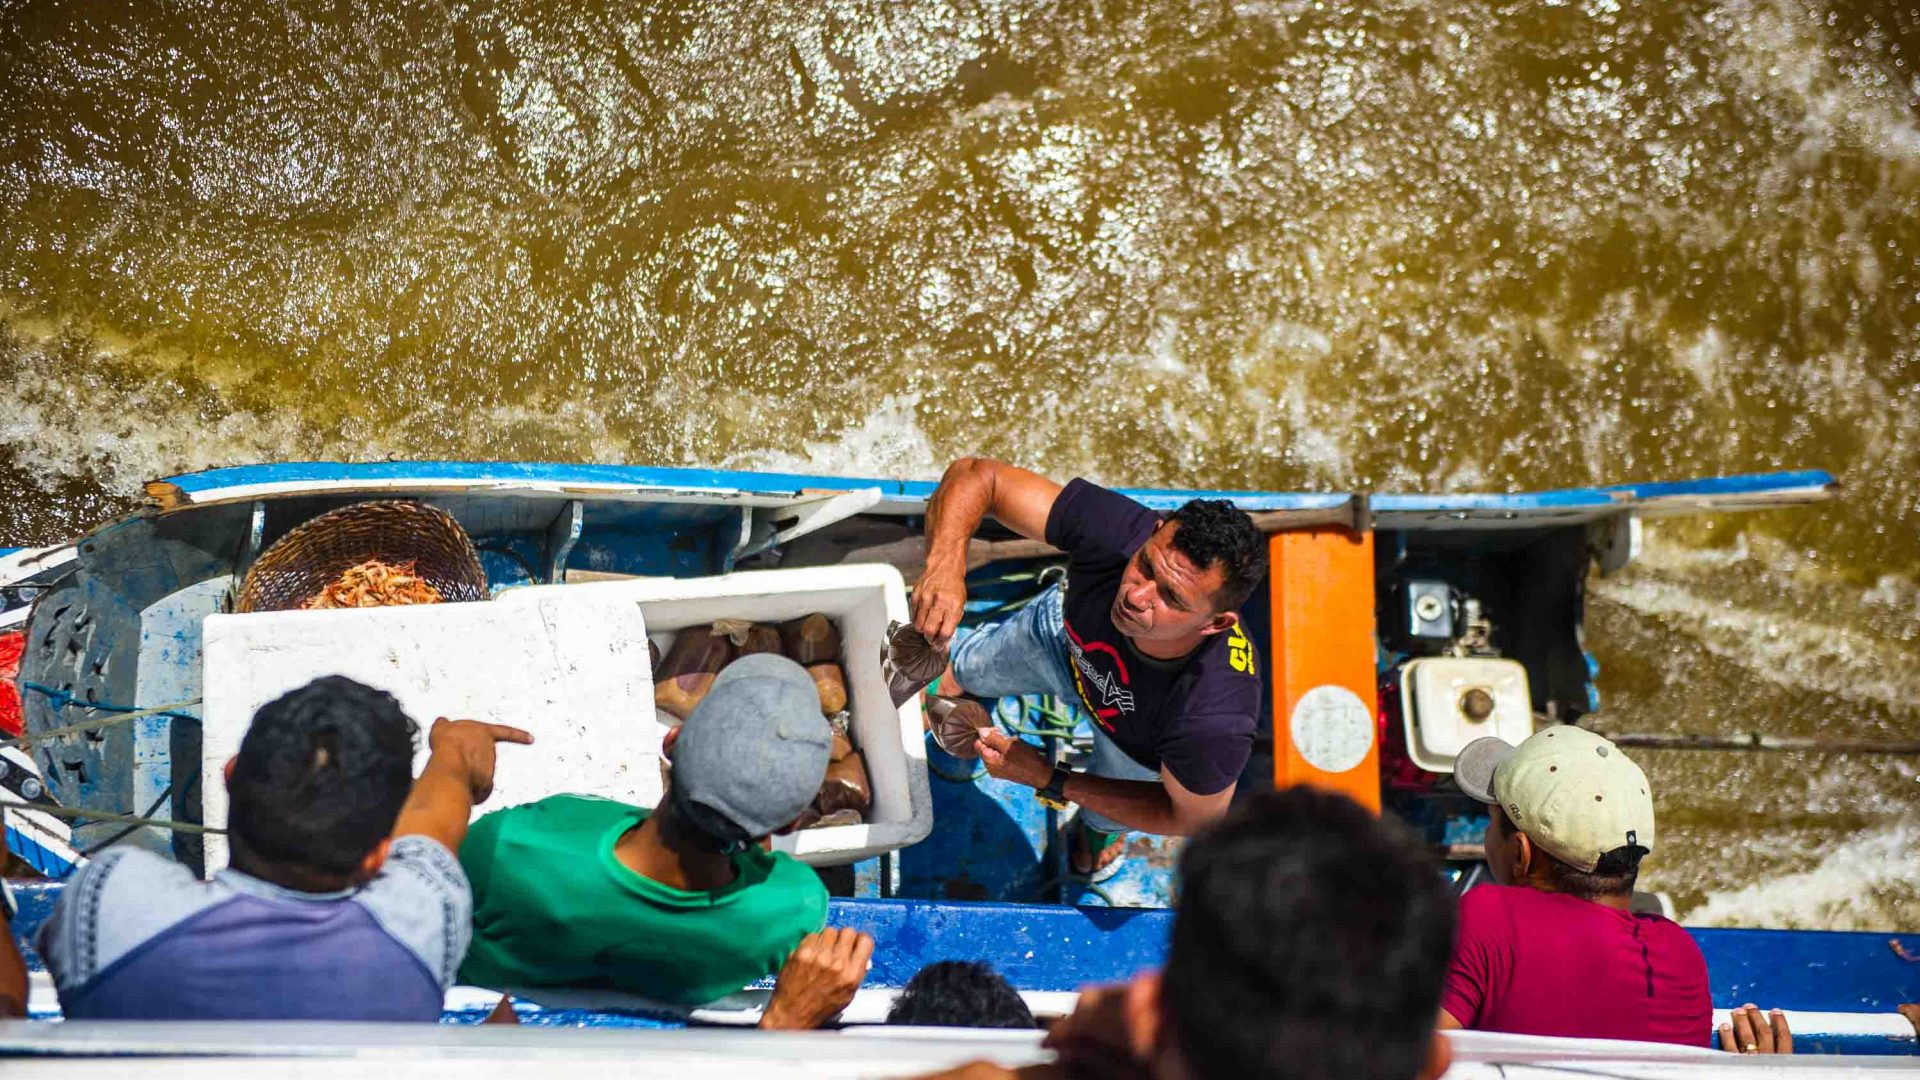 An acai berry vendor reaches up to passengers on the Cisne Branco riverboat.